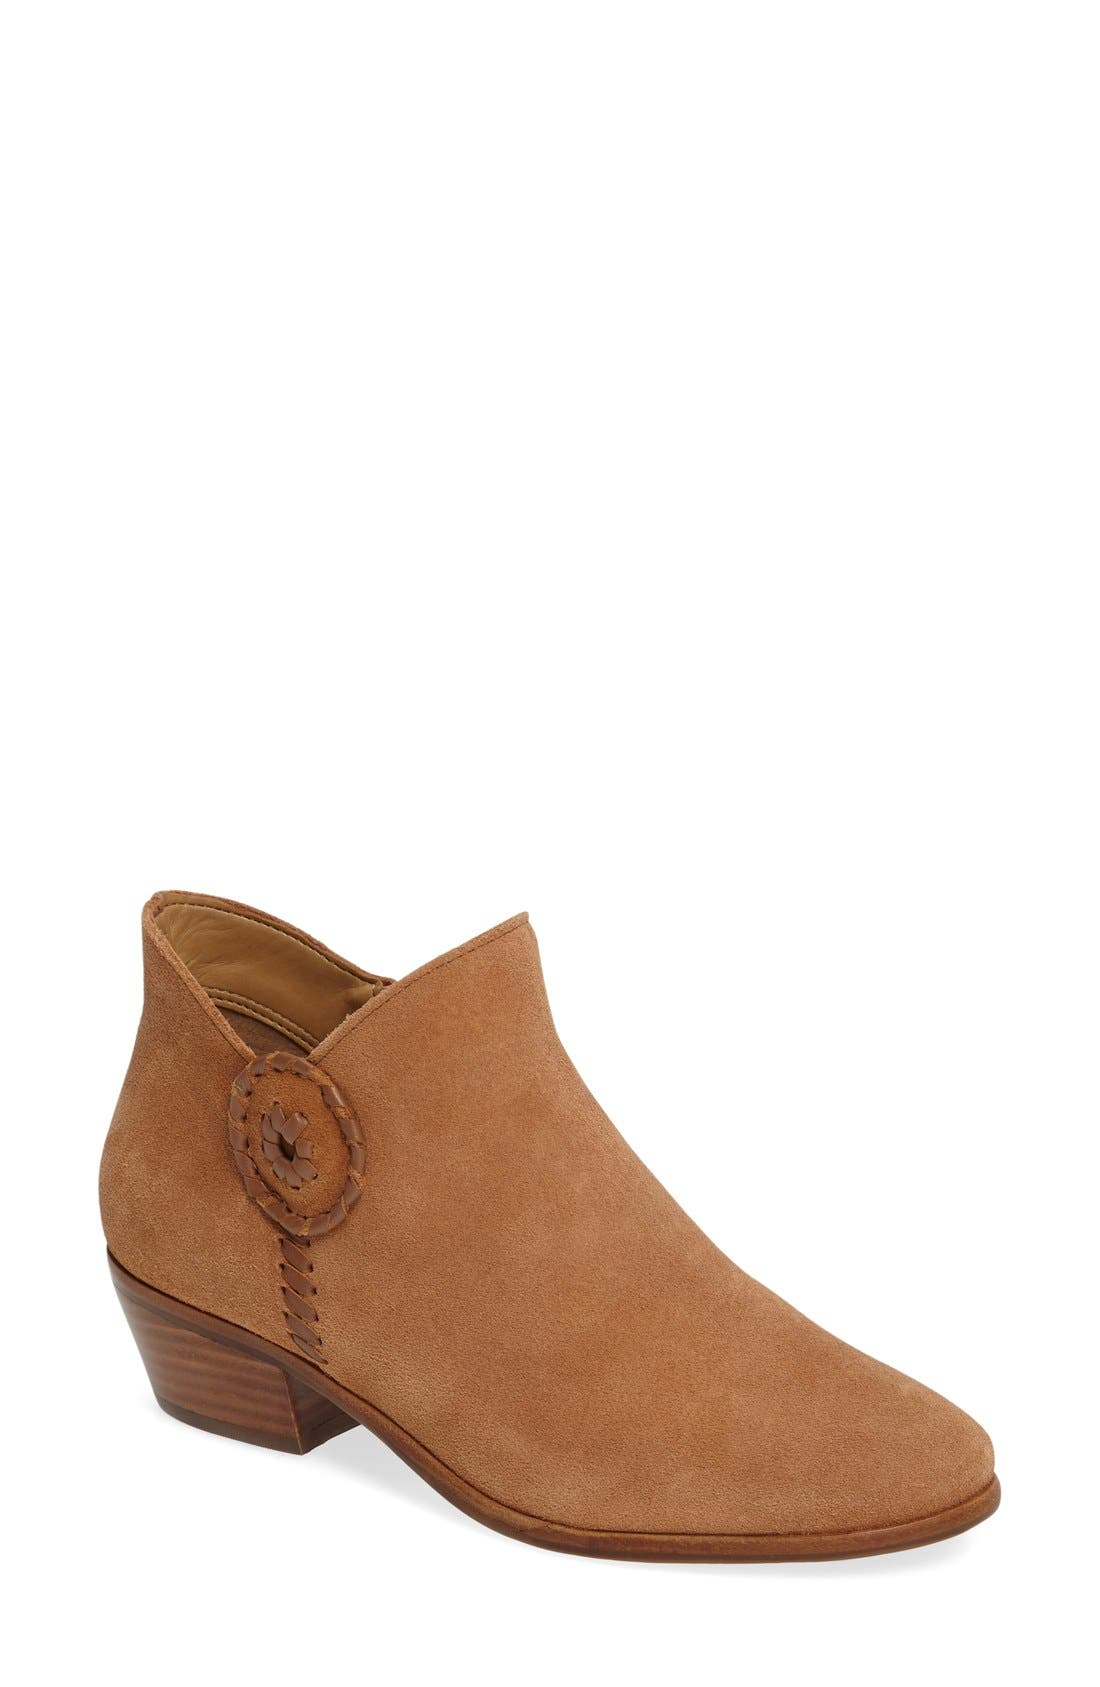 Peyton Bootie,                         Main,                         color, Oak Suede